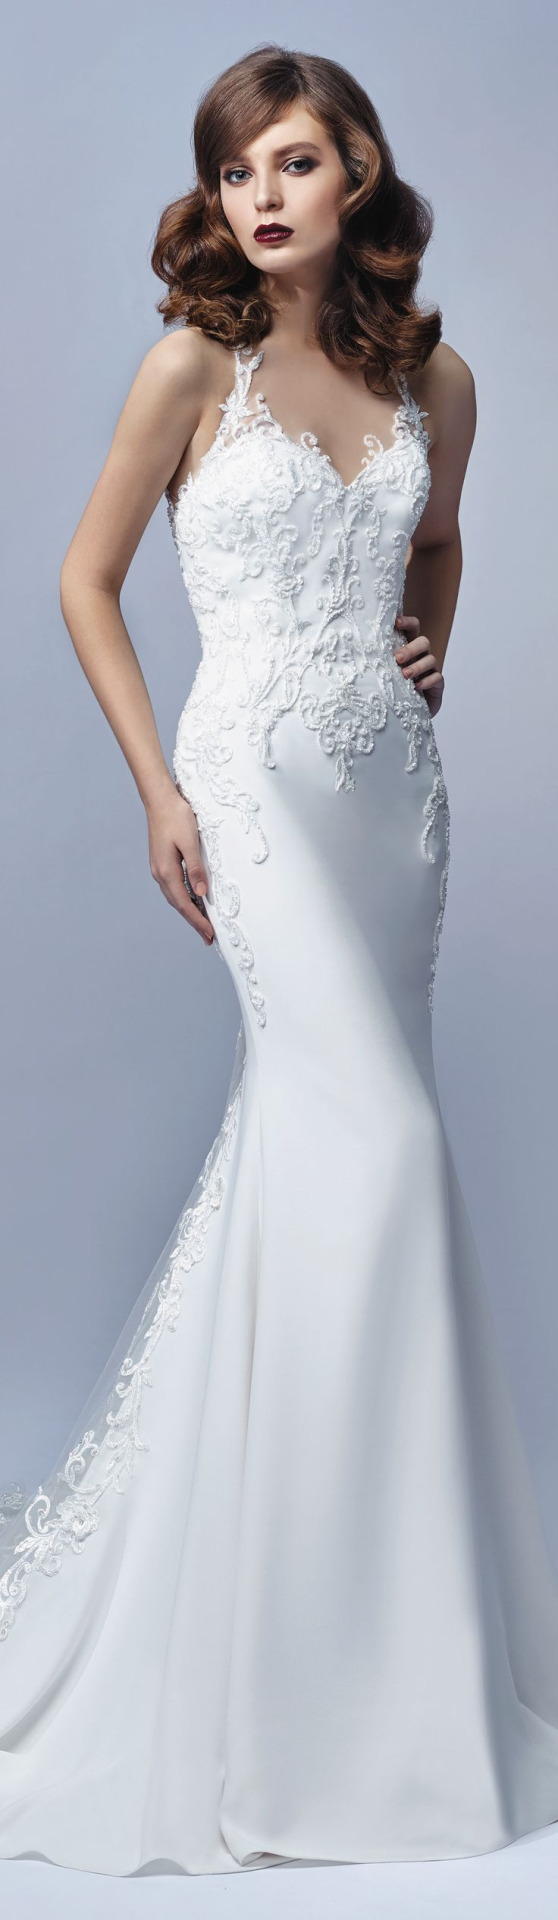 Great Bridal Gowns For Mature Brides Contemporary - Wedding Ideas ...